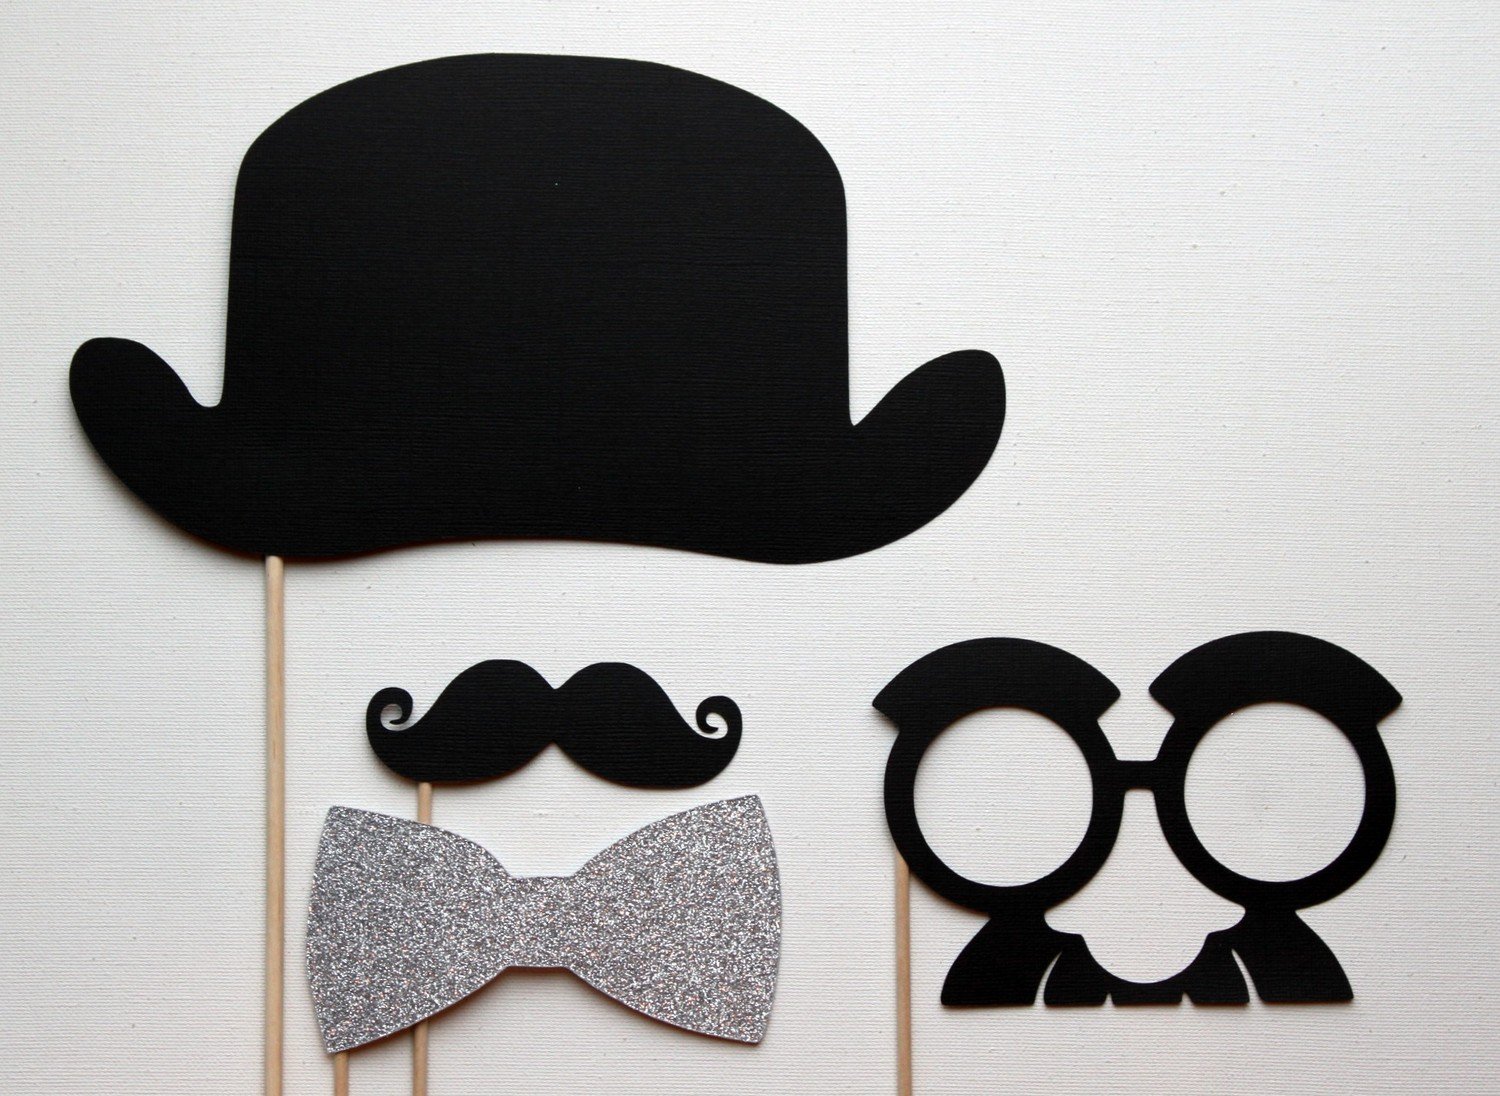 Bow Tie clipart derby hat Tie Bowler Pinterest more bow